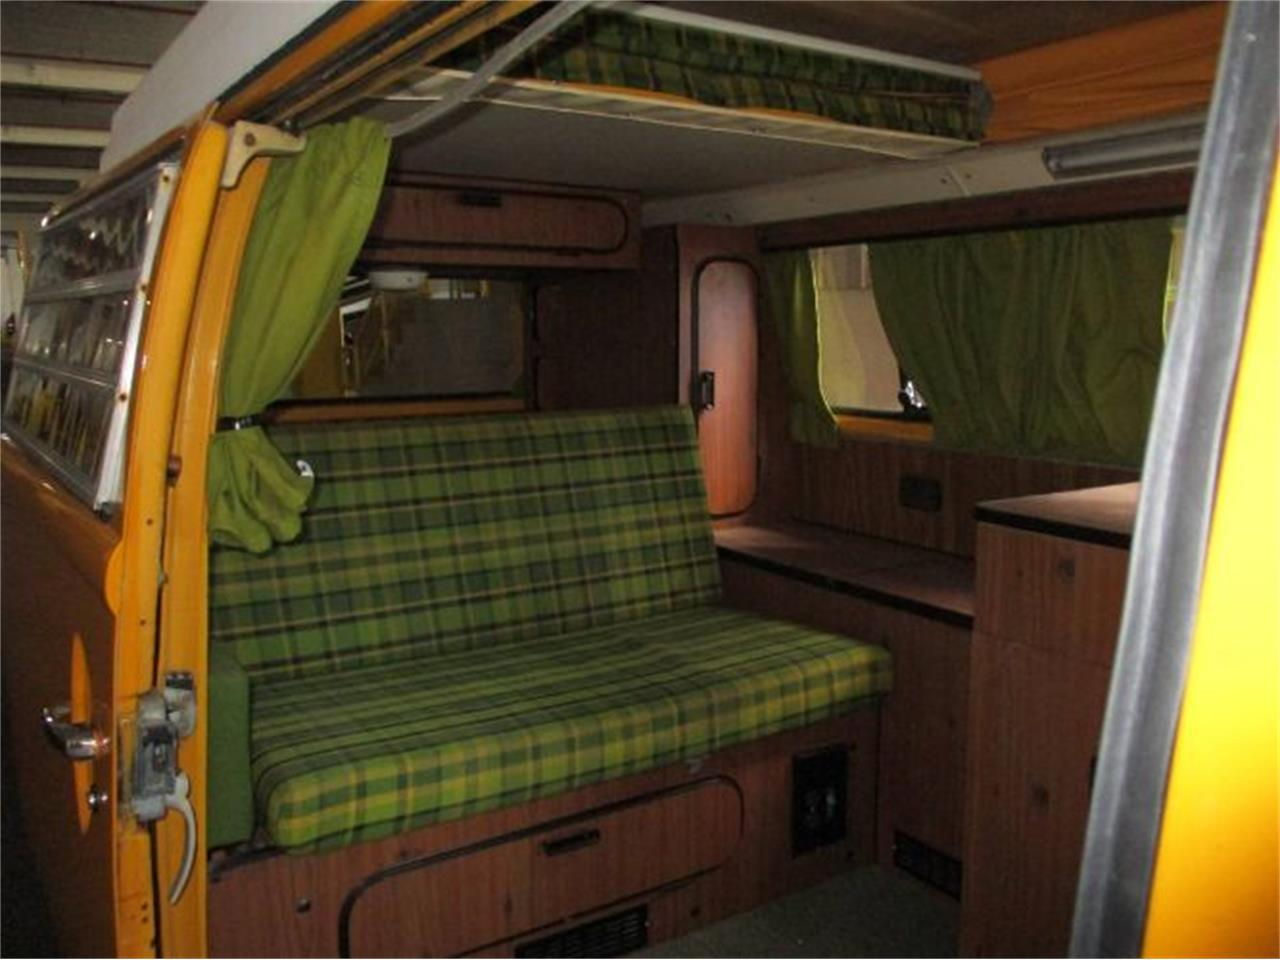 Large Picture of 1976 Westfalia Camper located in Cadillac Michigan - $35,495.00 Offered by Classic Car Deals - Q56J